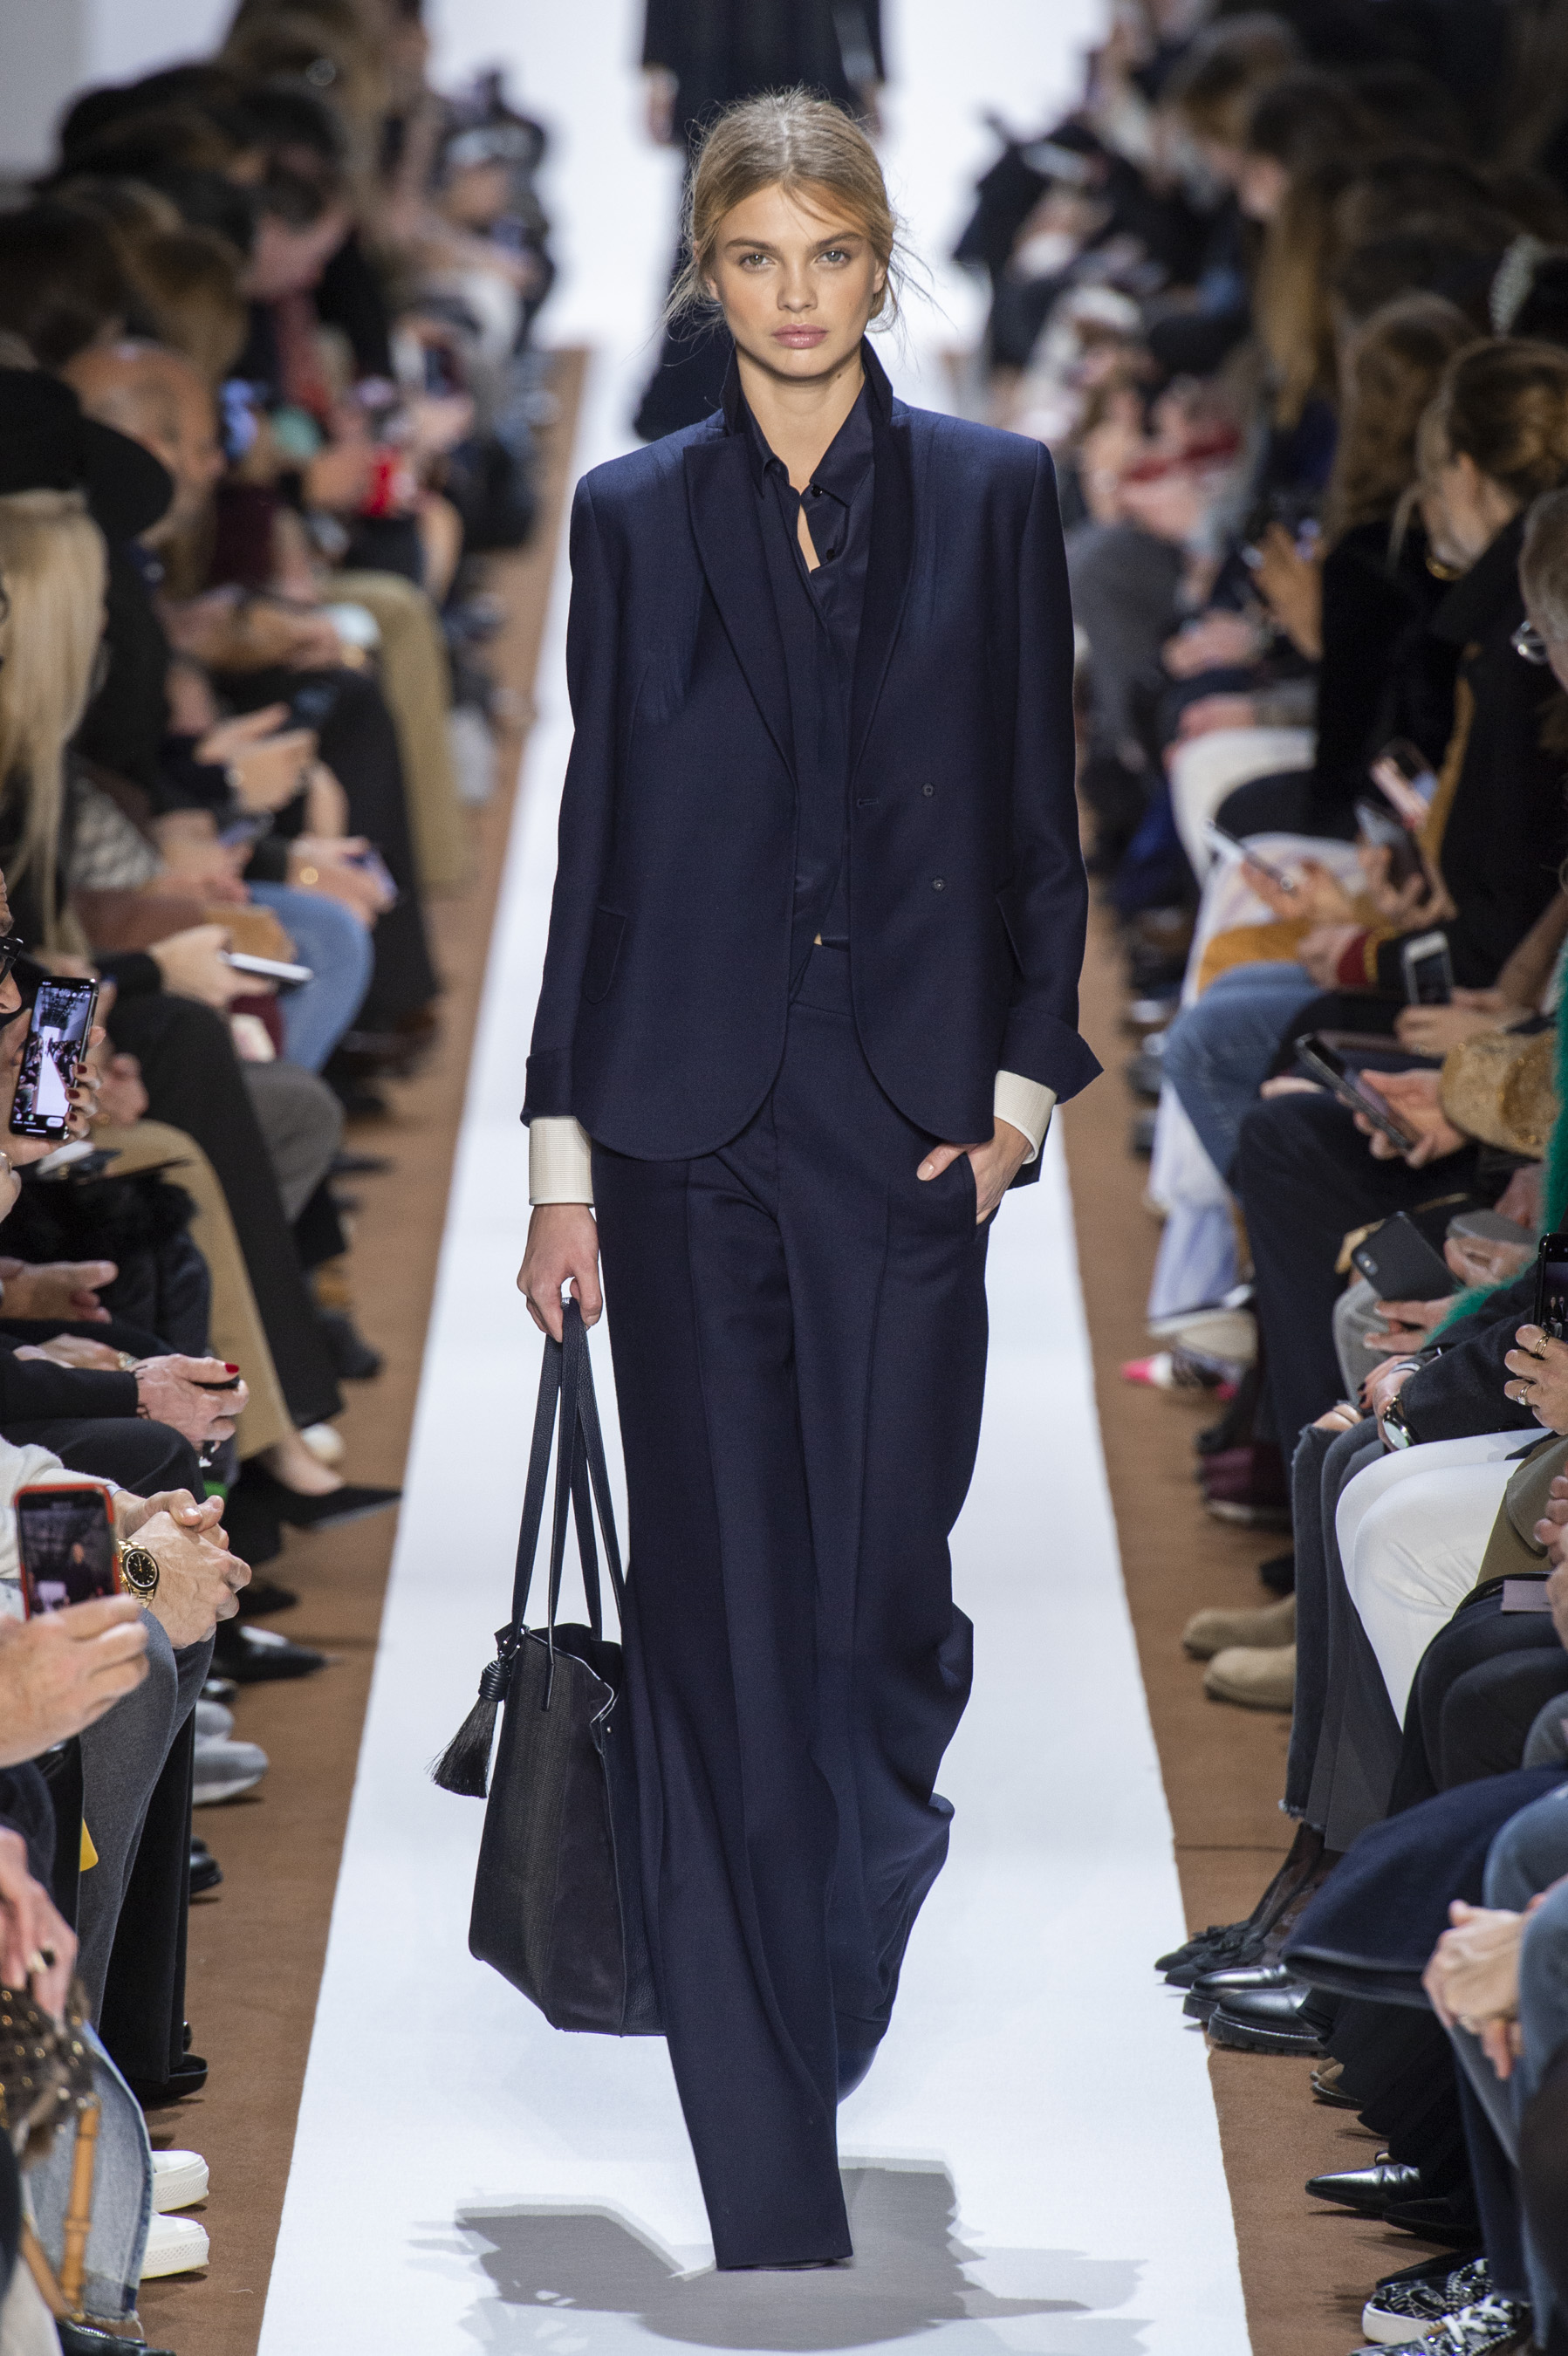 Wide Leg Pant Fall 2019 Womenswear Fashion Trend